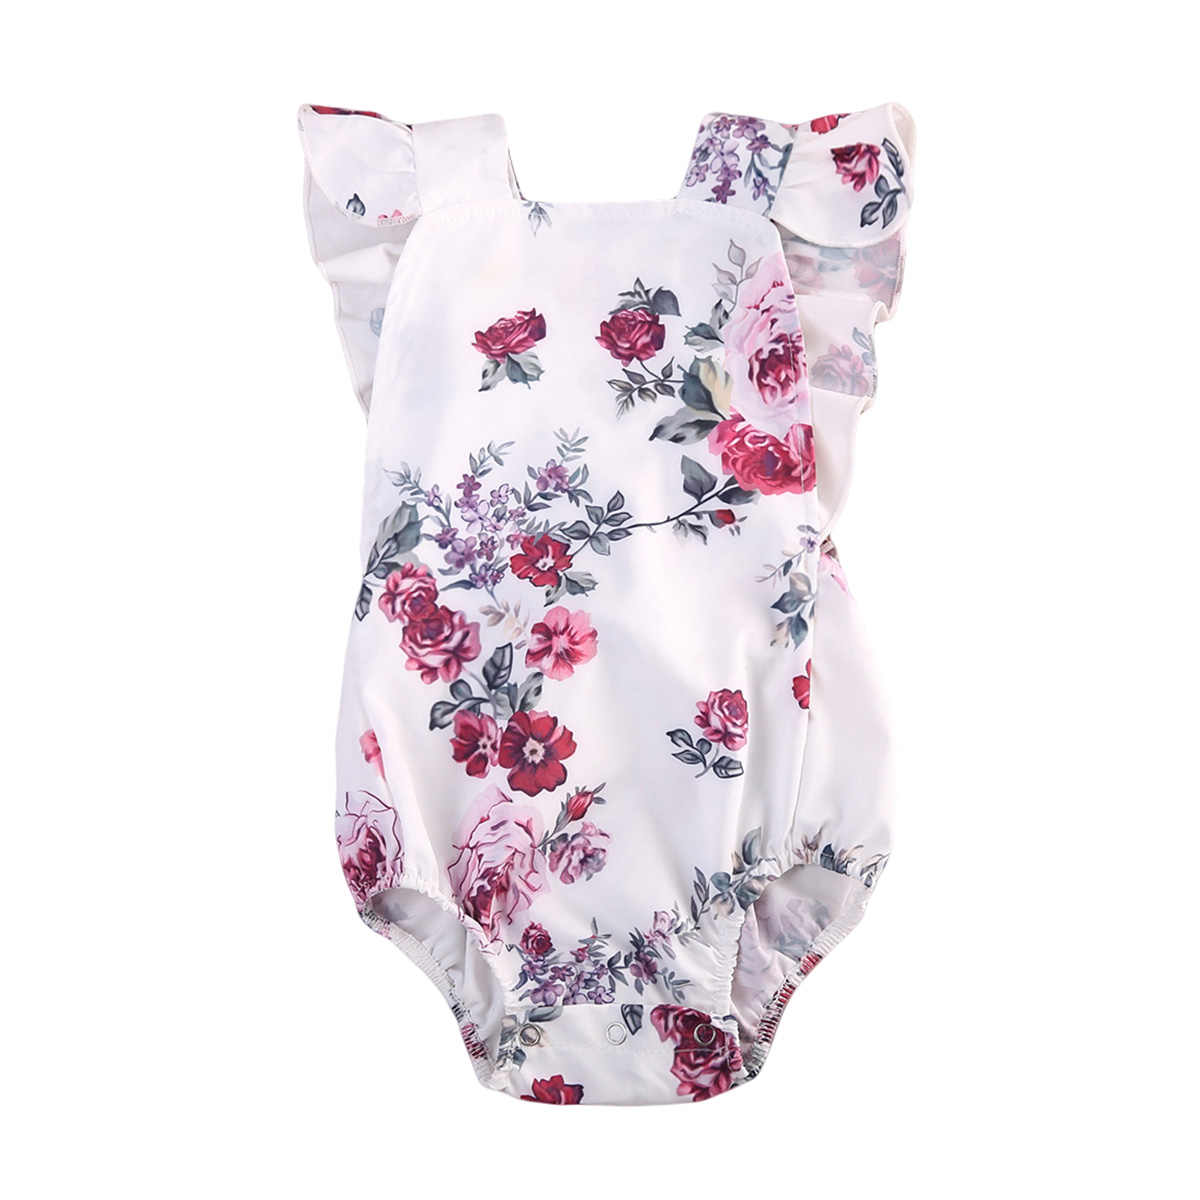 51ced6993 Adorable Toddler Baby Girl Clothes Floral Ruffles Romper One-pieces Clothes  Baby Clothing